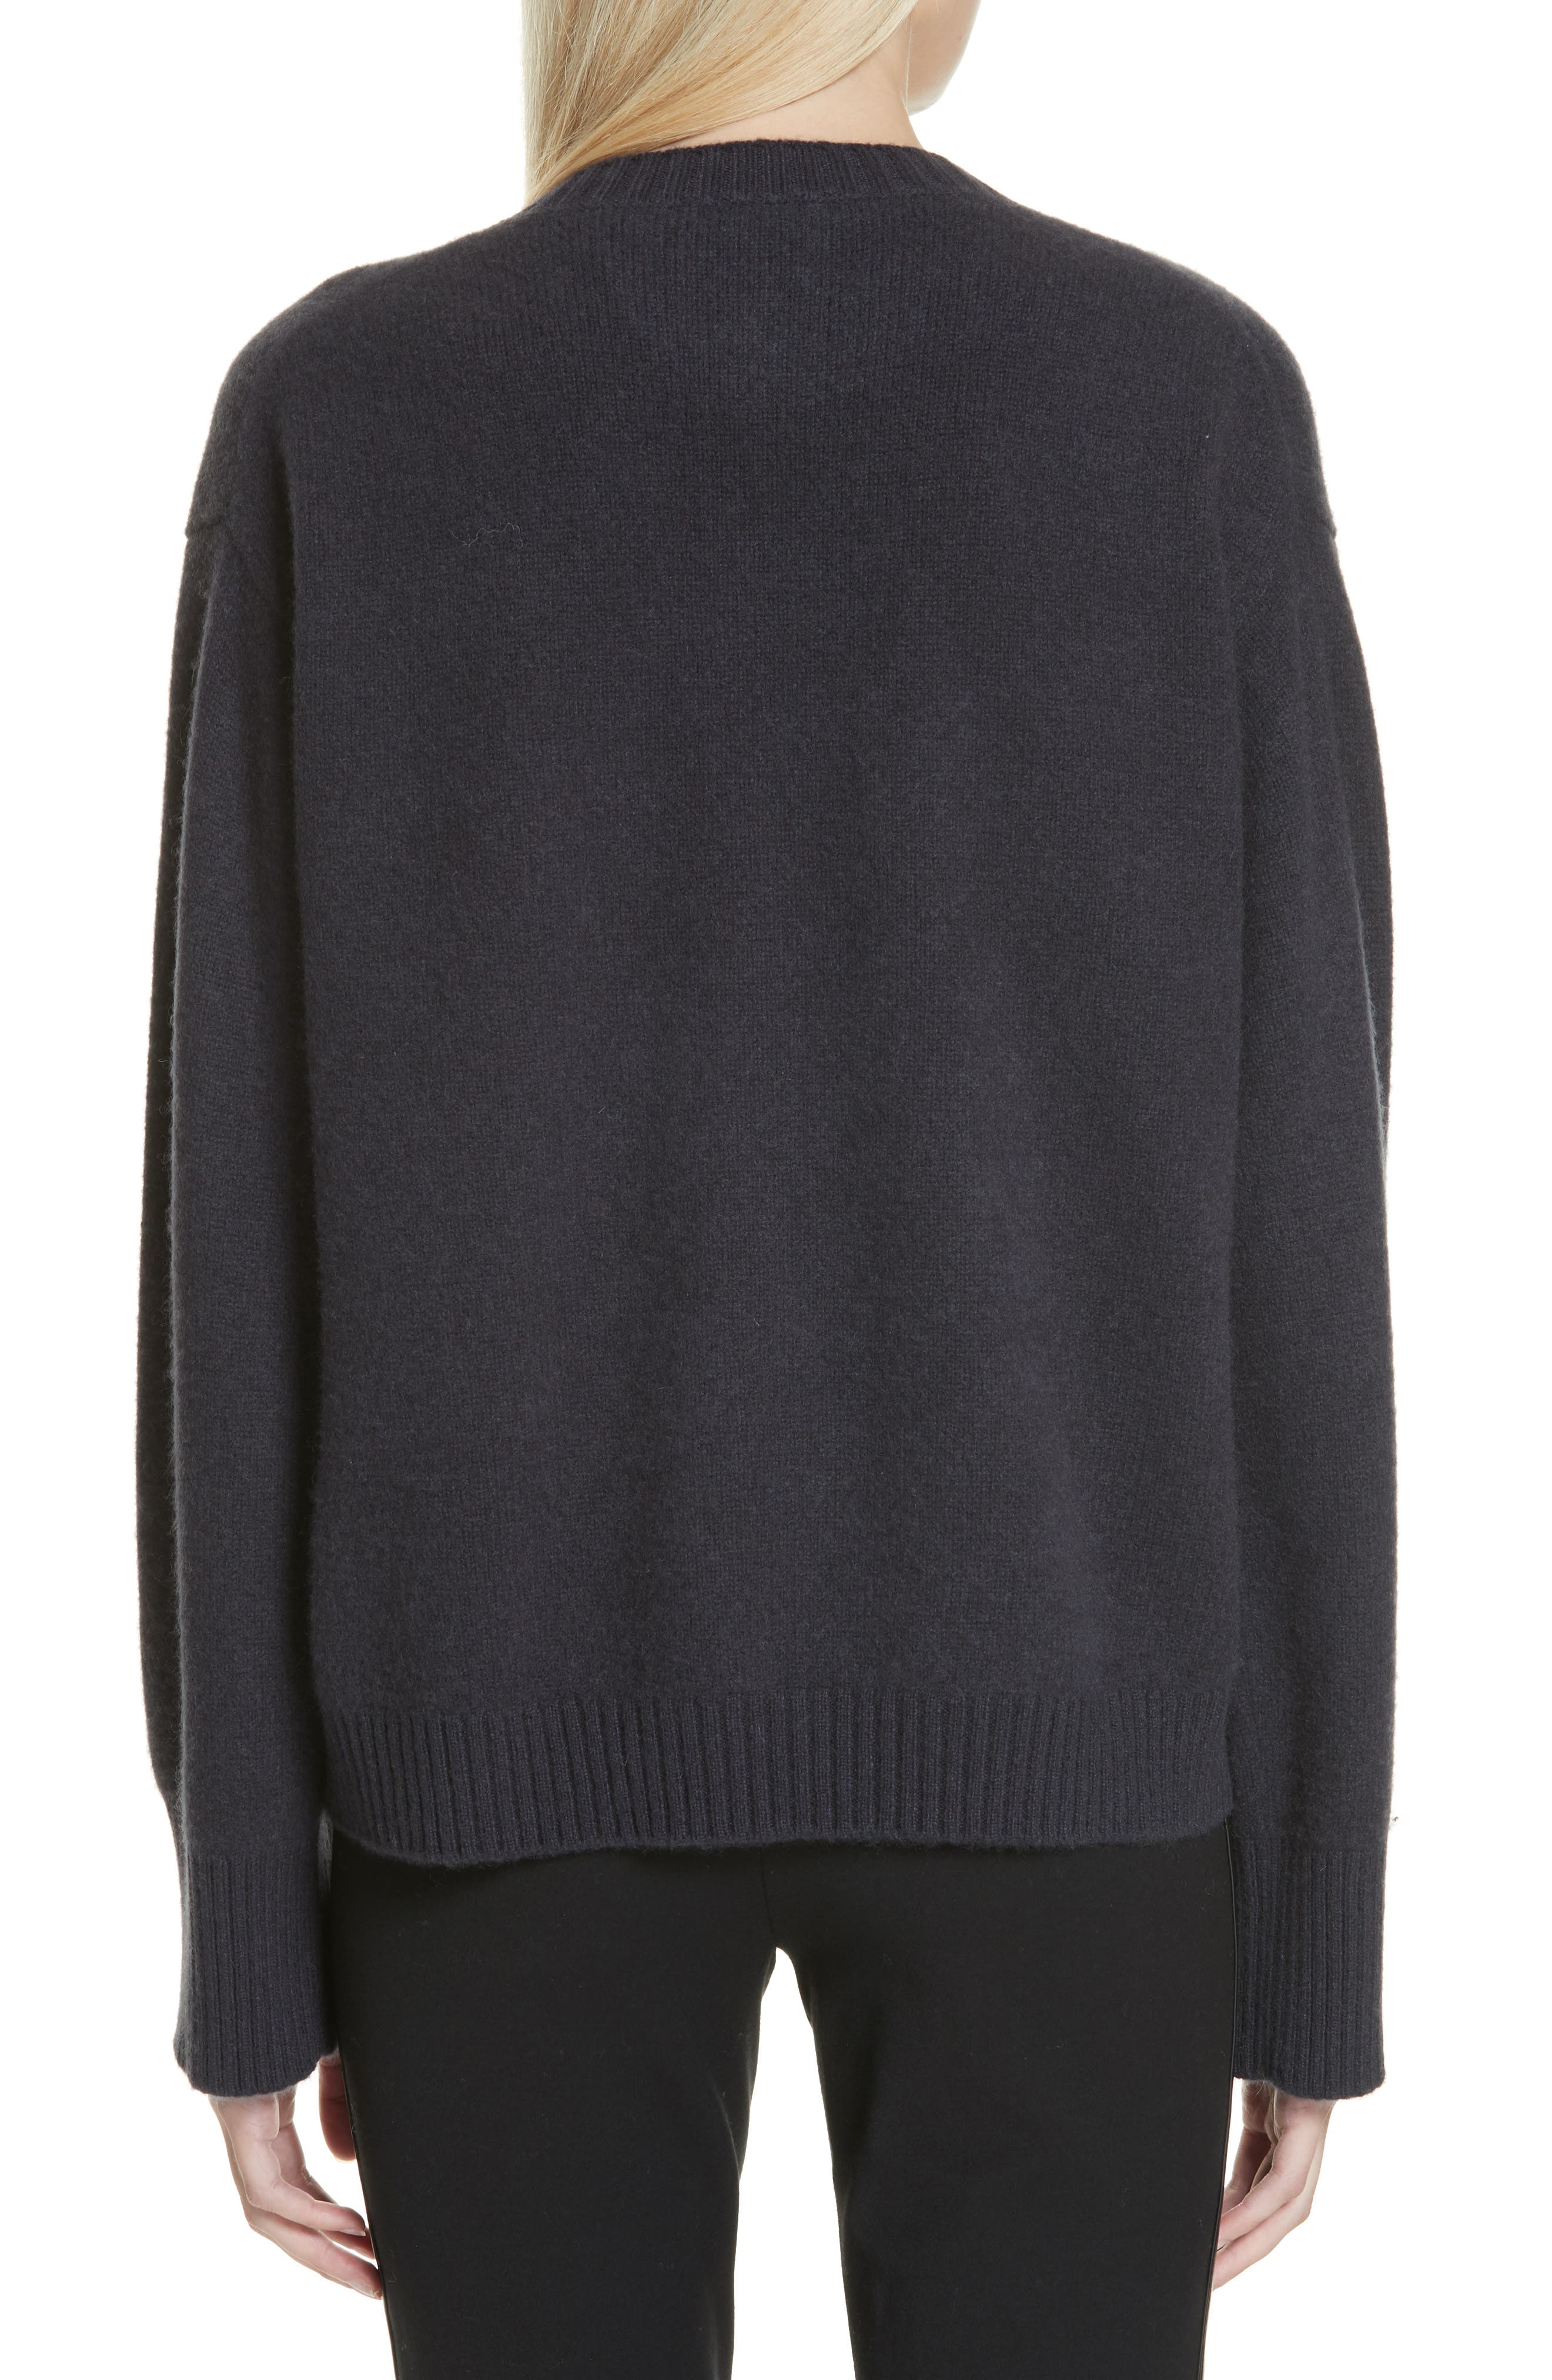 VINCE, Boxy Cashmere Sweater, Alternate thumbnail 2, color, OBSIDIAN